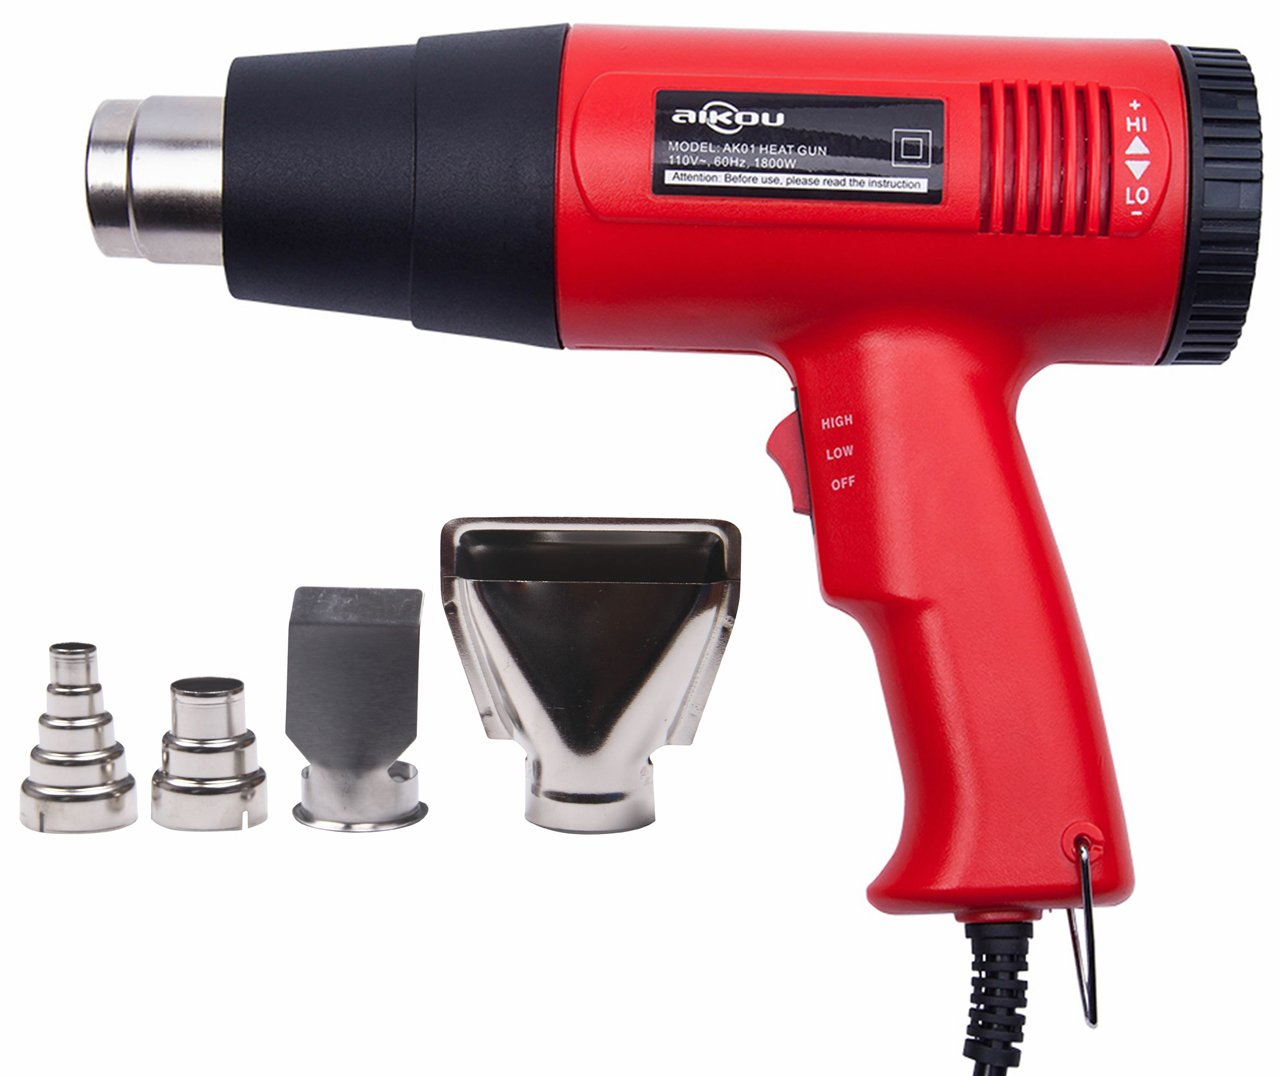 AIKOU 1800W Adjustable Temperature Power 110V Hot Air Heat Gun Fast Heating Blower Kits (Red)